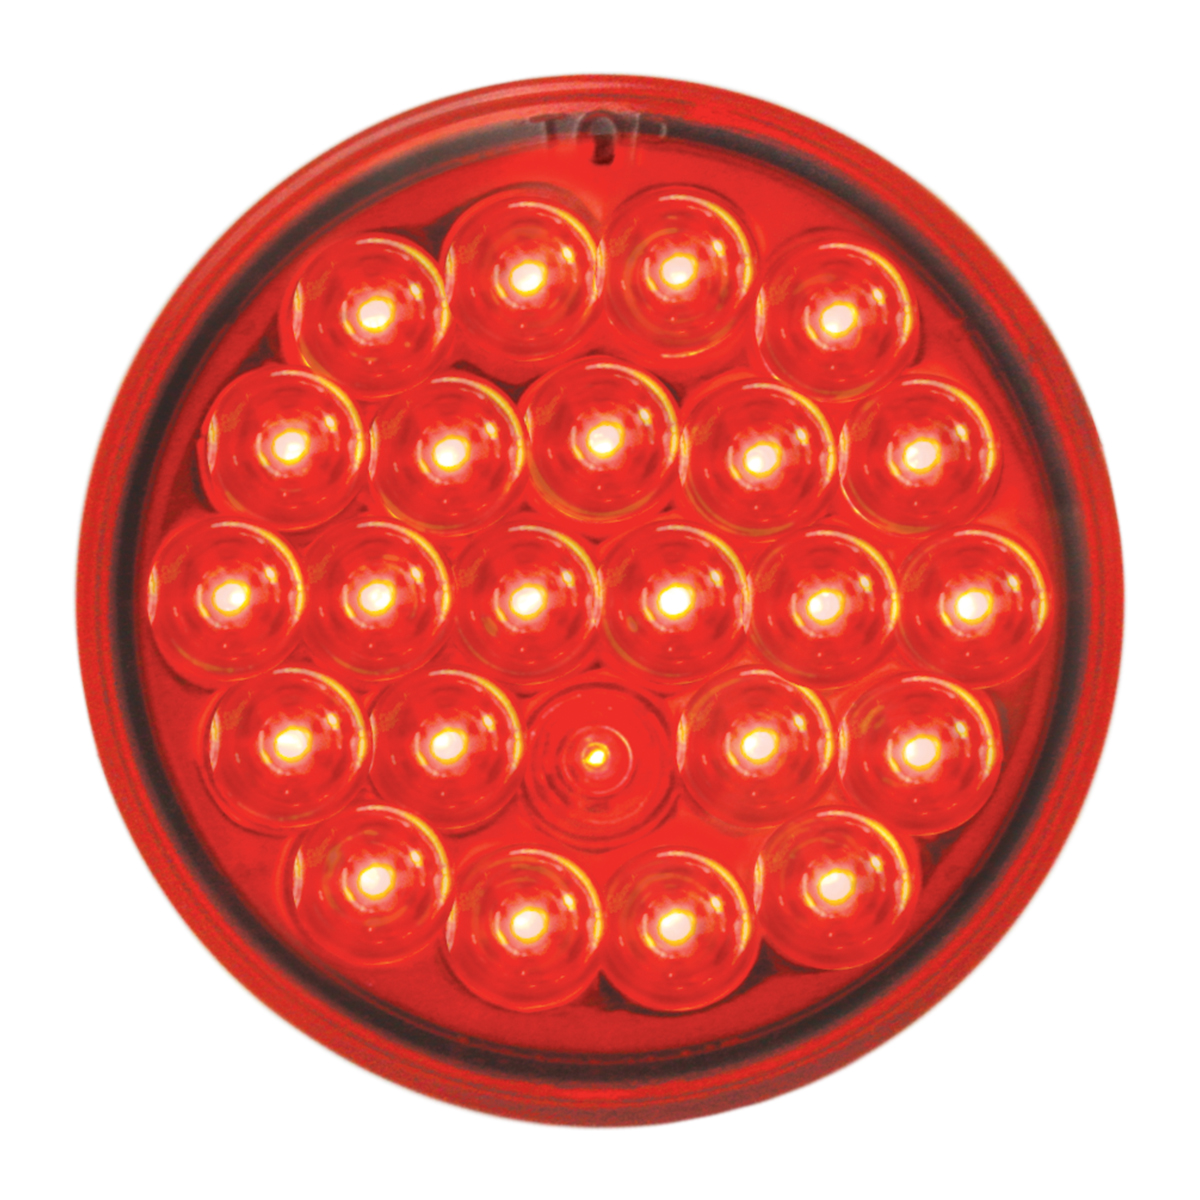 "#78273 4"" Round Pearl LED Flat Red/Red Light"